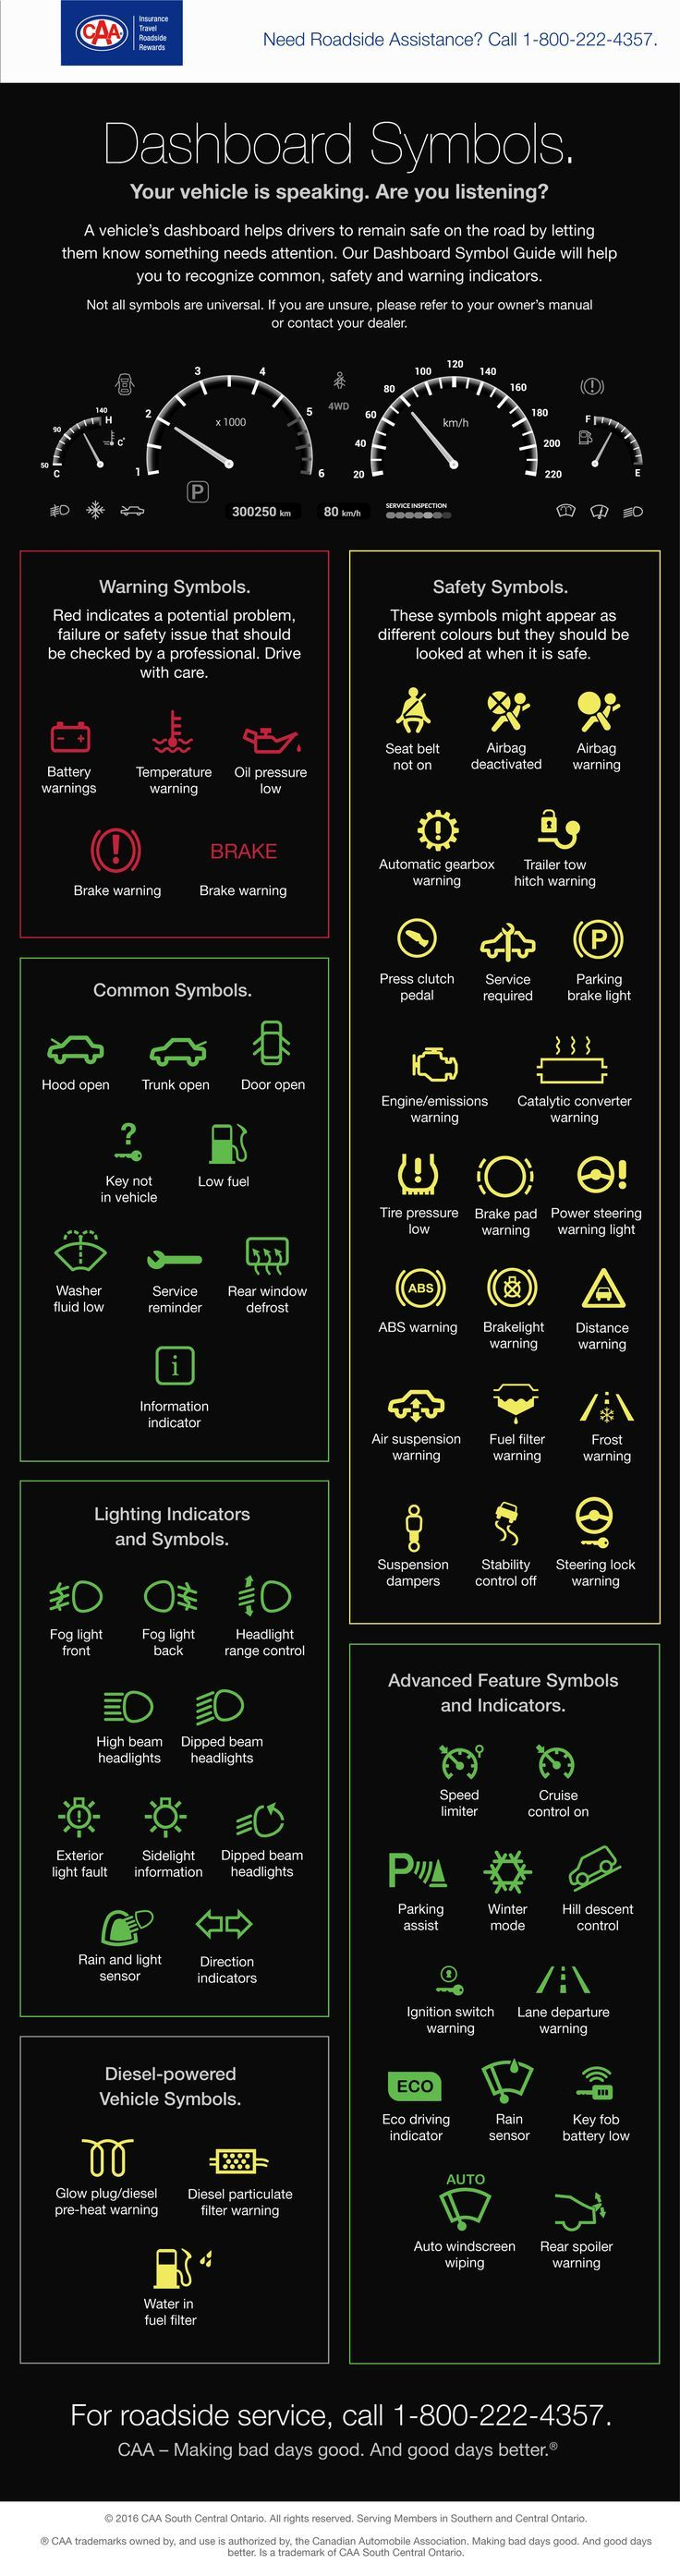 Have You Ever Wondered What The Dashboard Symbols Mean To Make